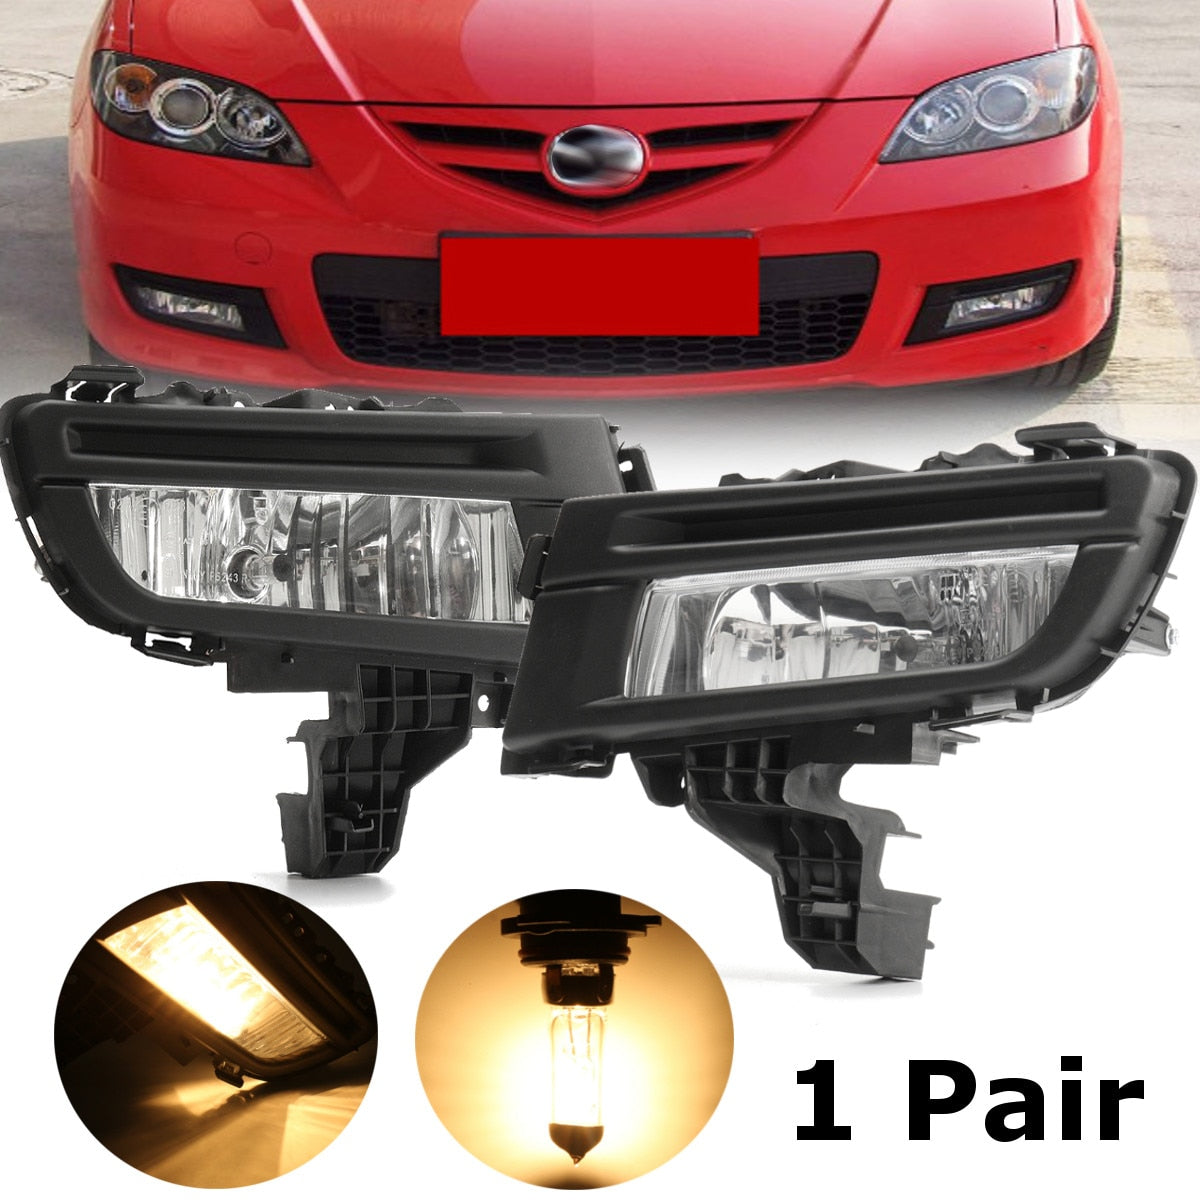 Front Fog Light Lamp 12V 51W Front Left Right Side Replacement For Mazda 3 2007 2008 2009 Car Accessories